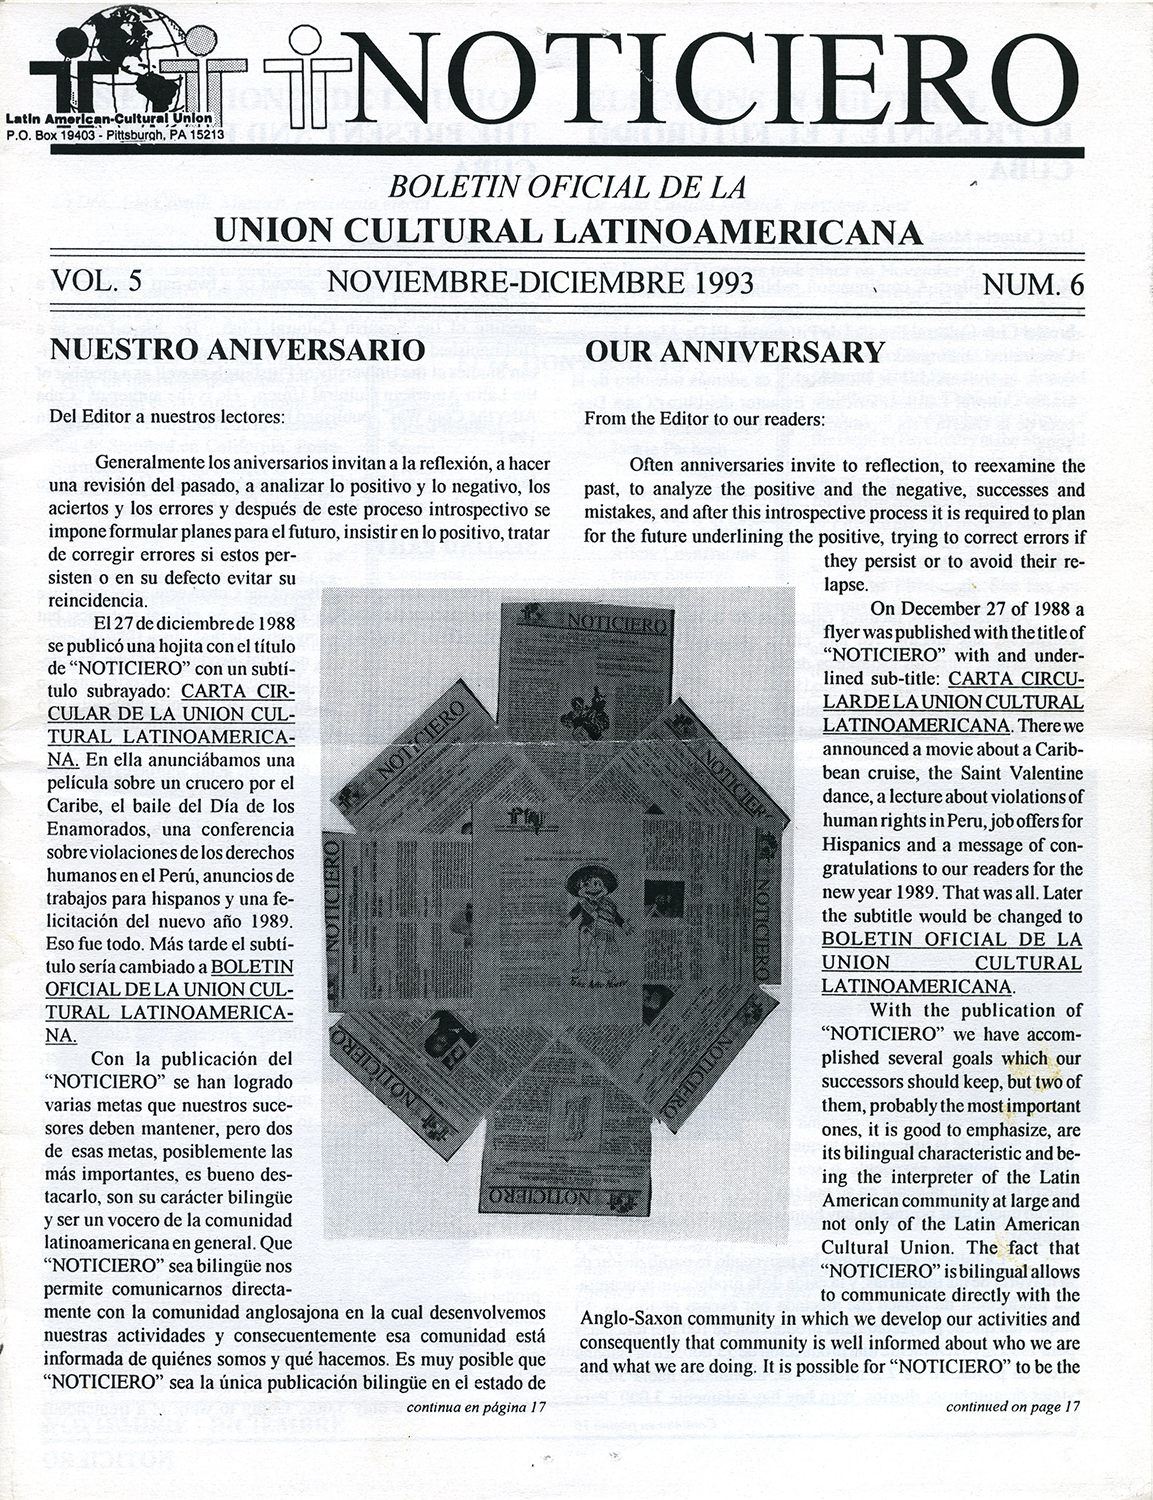 Front page of the November/December 1993 issue of Noticiero, a newsletter issued by the of Pittsburgh's Latin American Cultural Union. Heinz History Center.